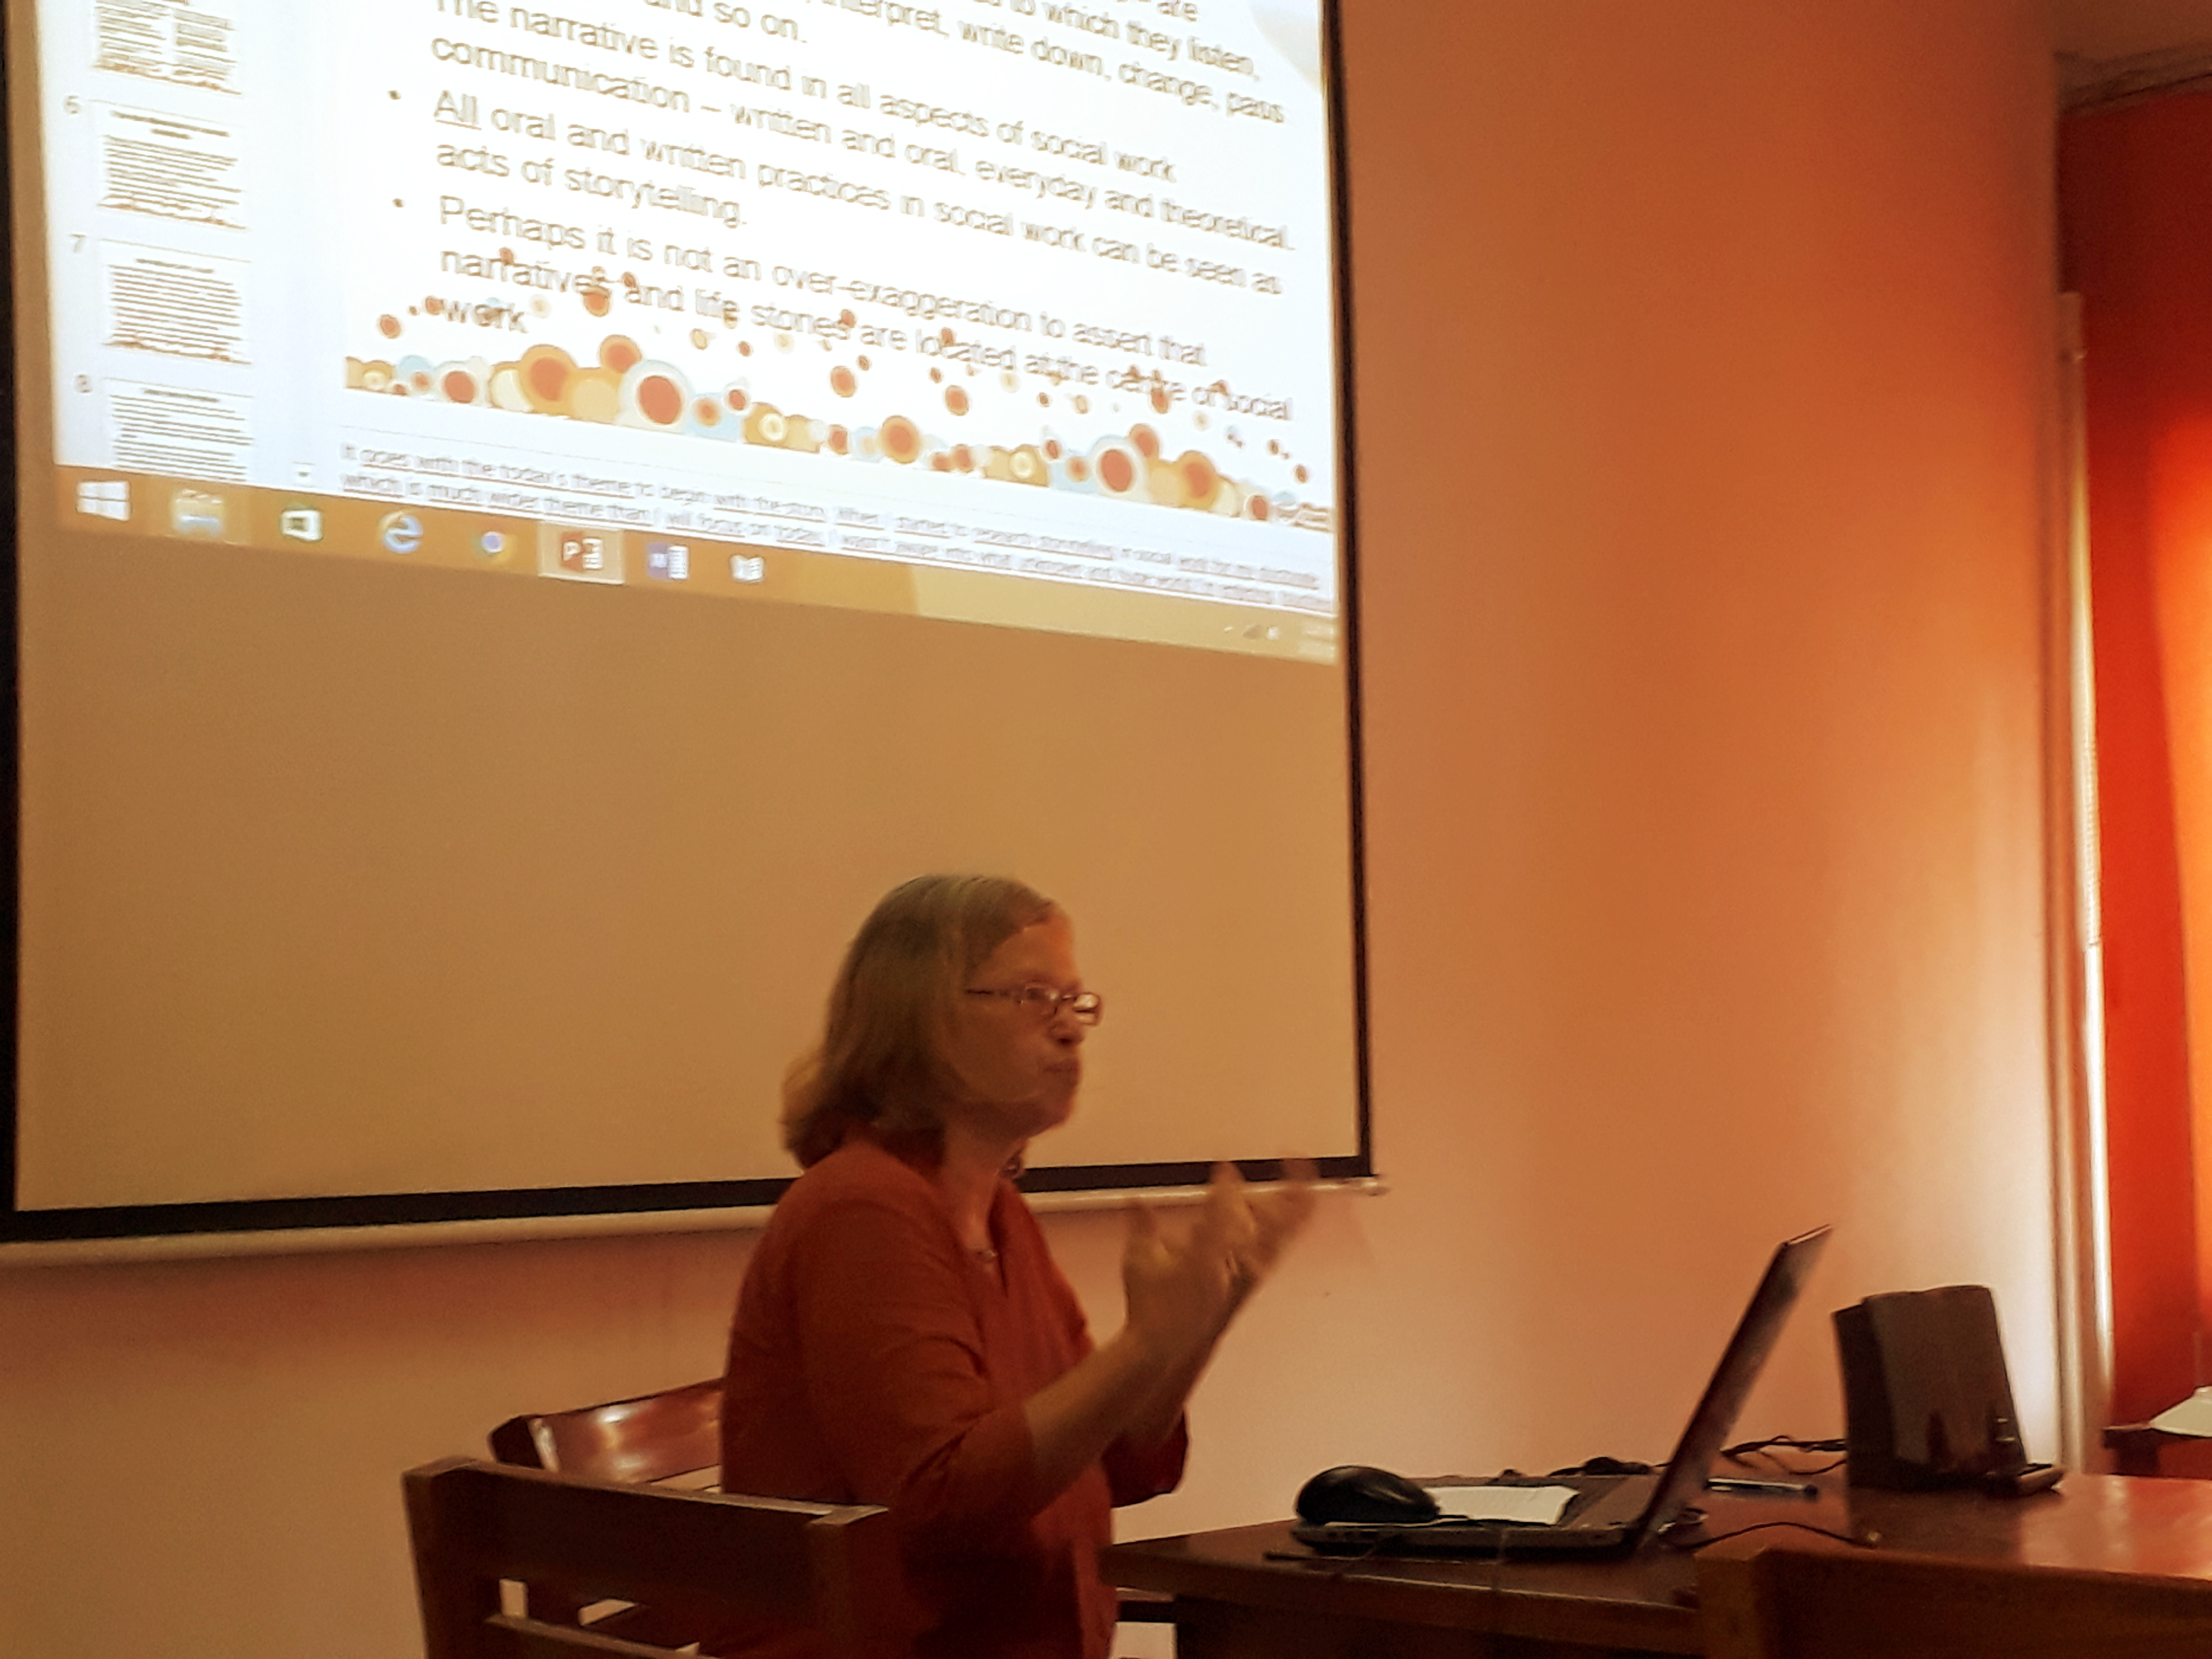 """Seminar on """"Narrative Methods and Storytelling in Social Work Research."""" – 23rd Feb."""